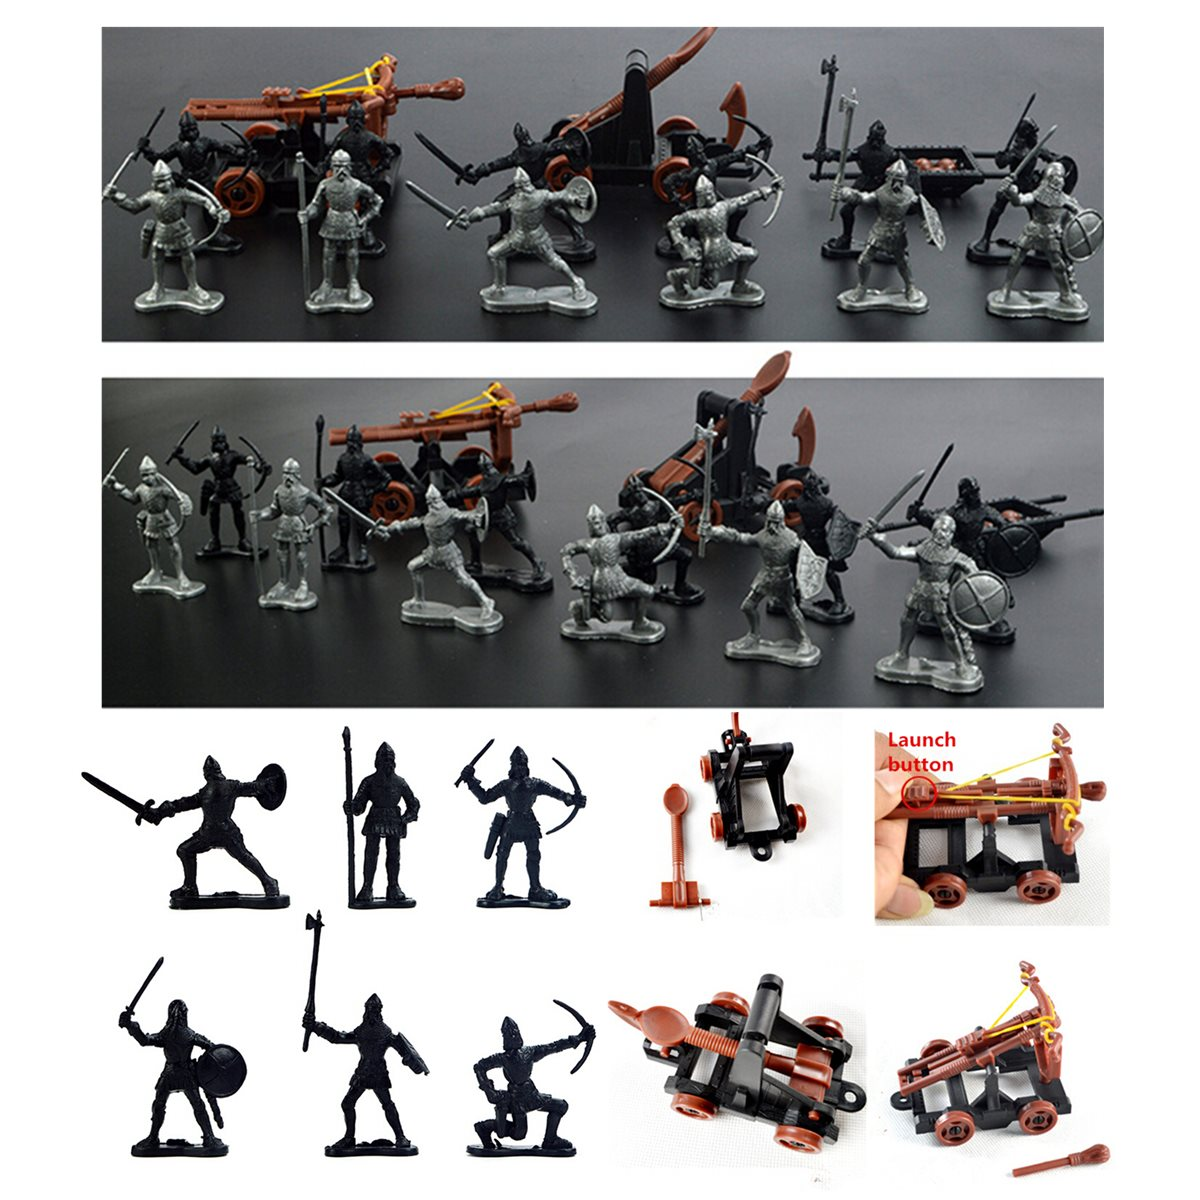 14 pcs/set Knights Medieval Toy Catapult Crossbow Soldiers Figures Playset Plastic Model Toys Gift For Children Adult children s toy crossbow with infrared white army green